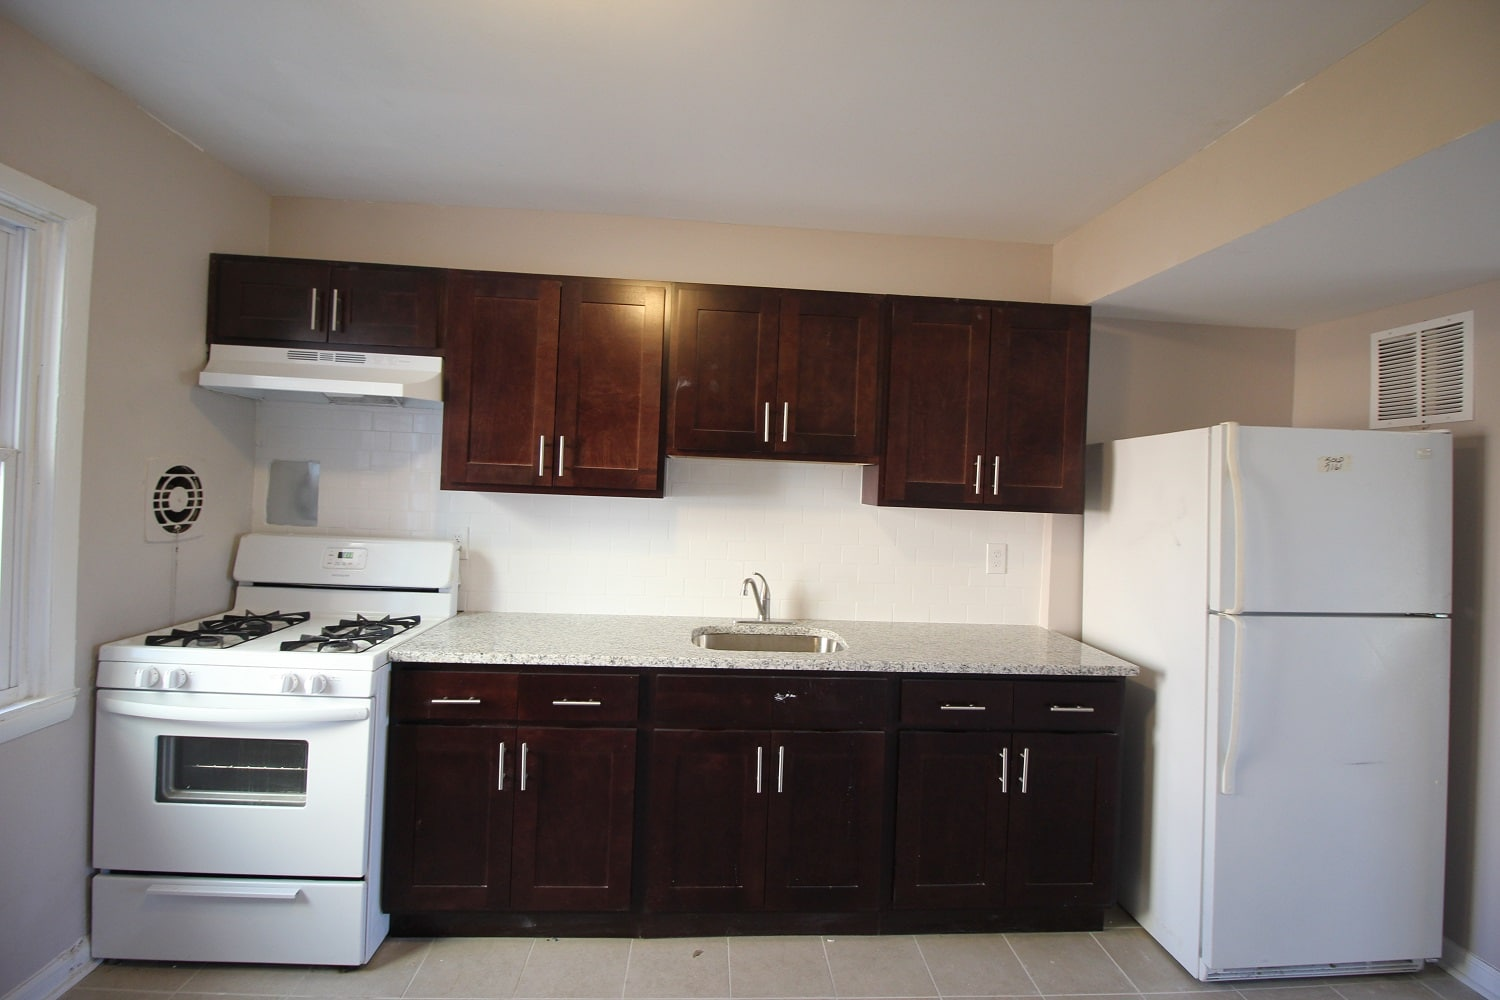 White Oven and Fridge in Kitchen Garrison Townhomes